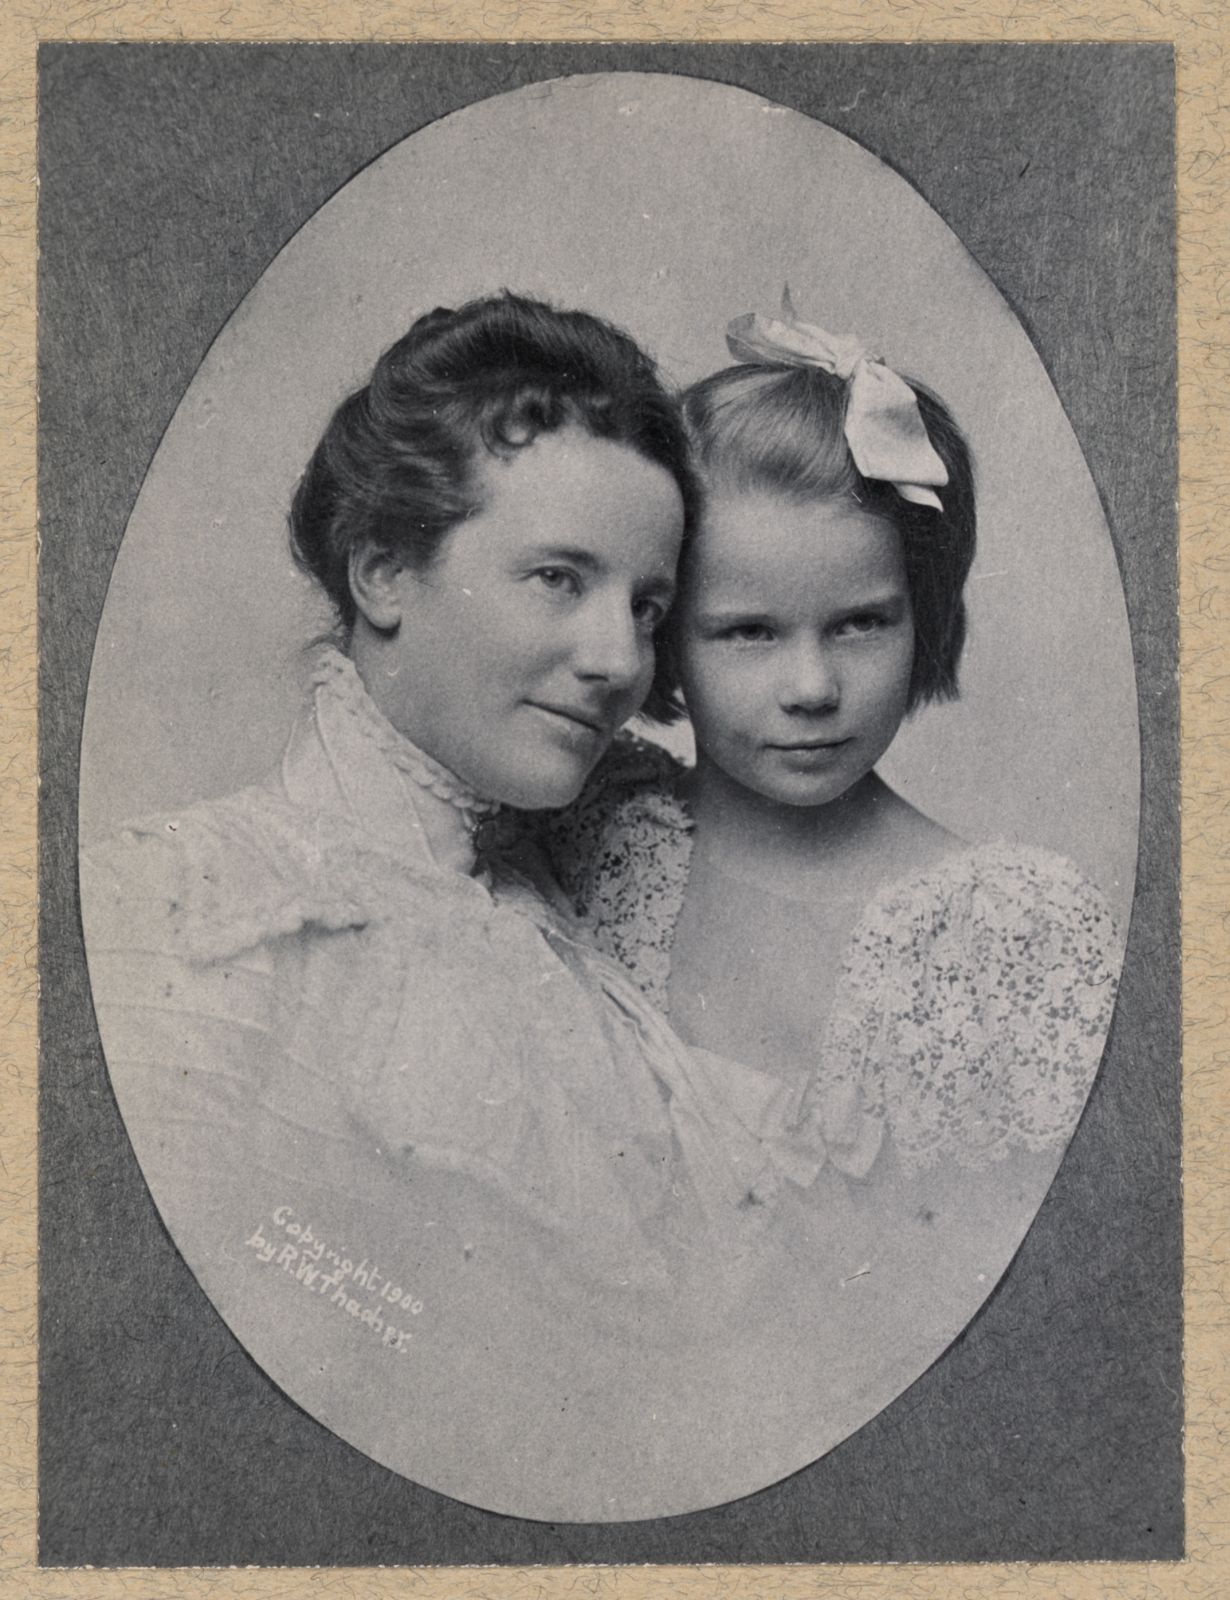 Ethel Roosevelt with her mother Edith in 1900. From the Roosevelt family albums, Library of Congress Prints and Photographs division.